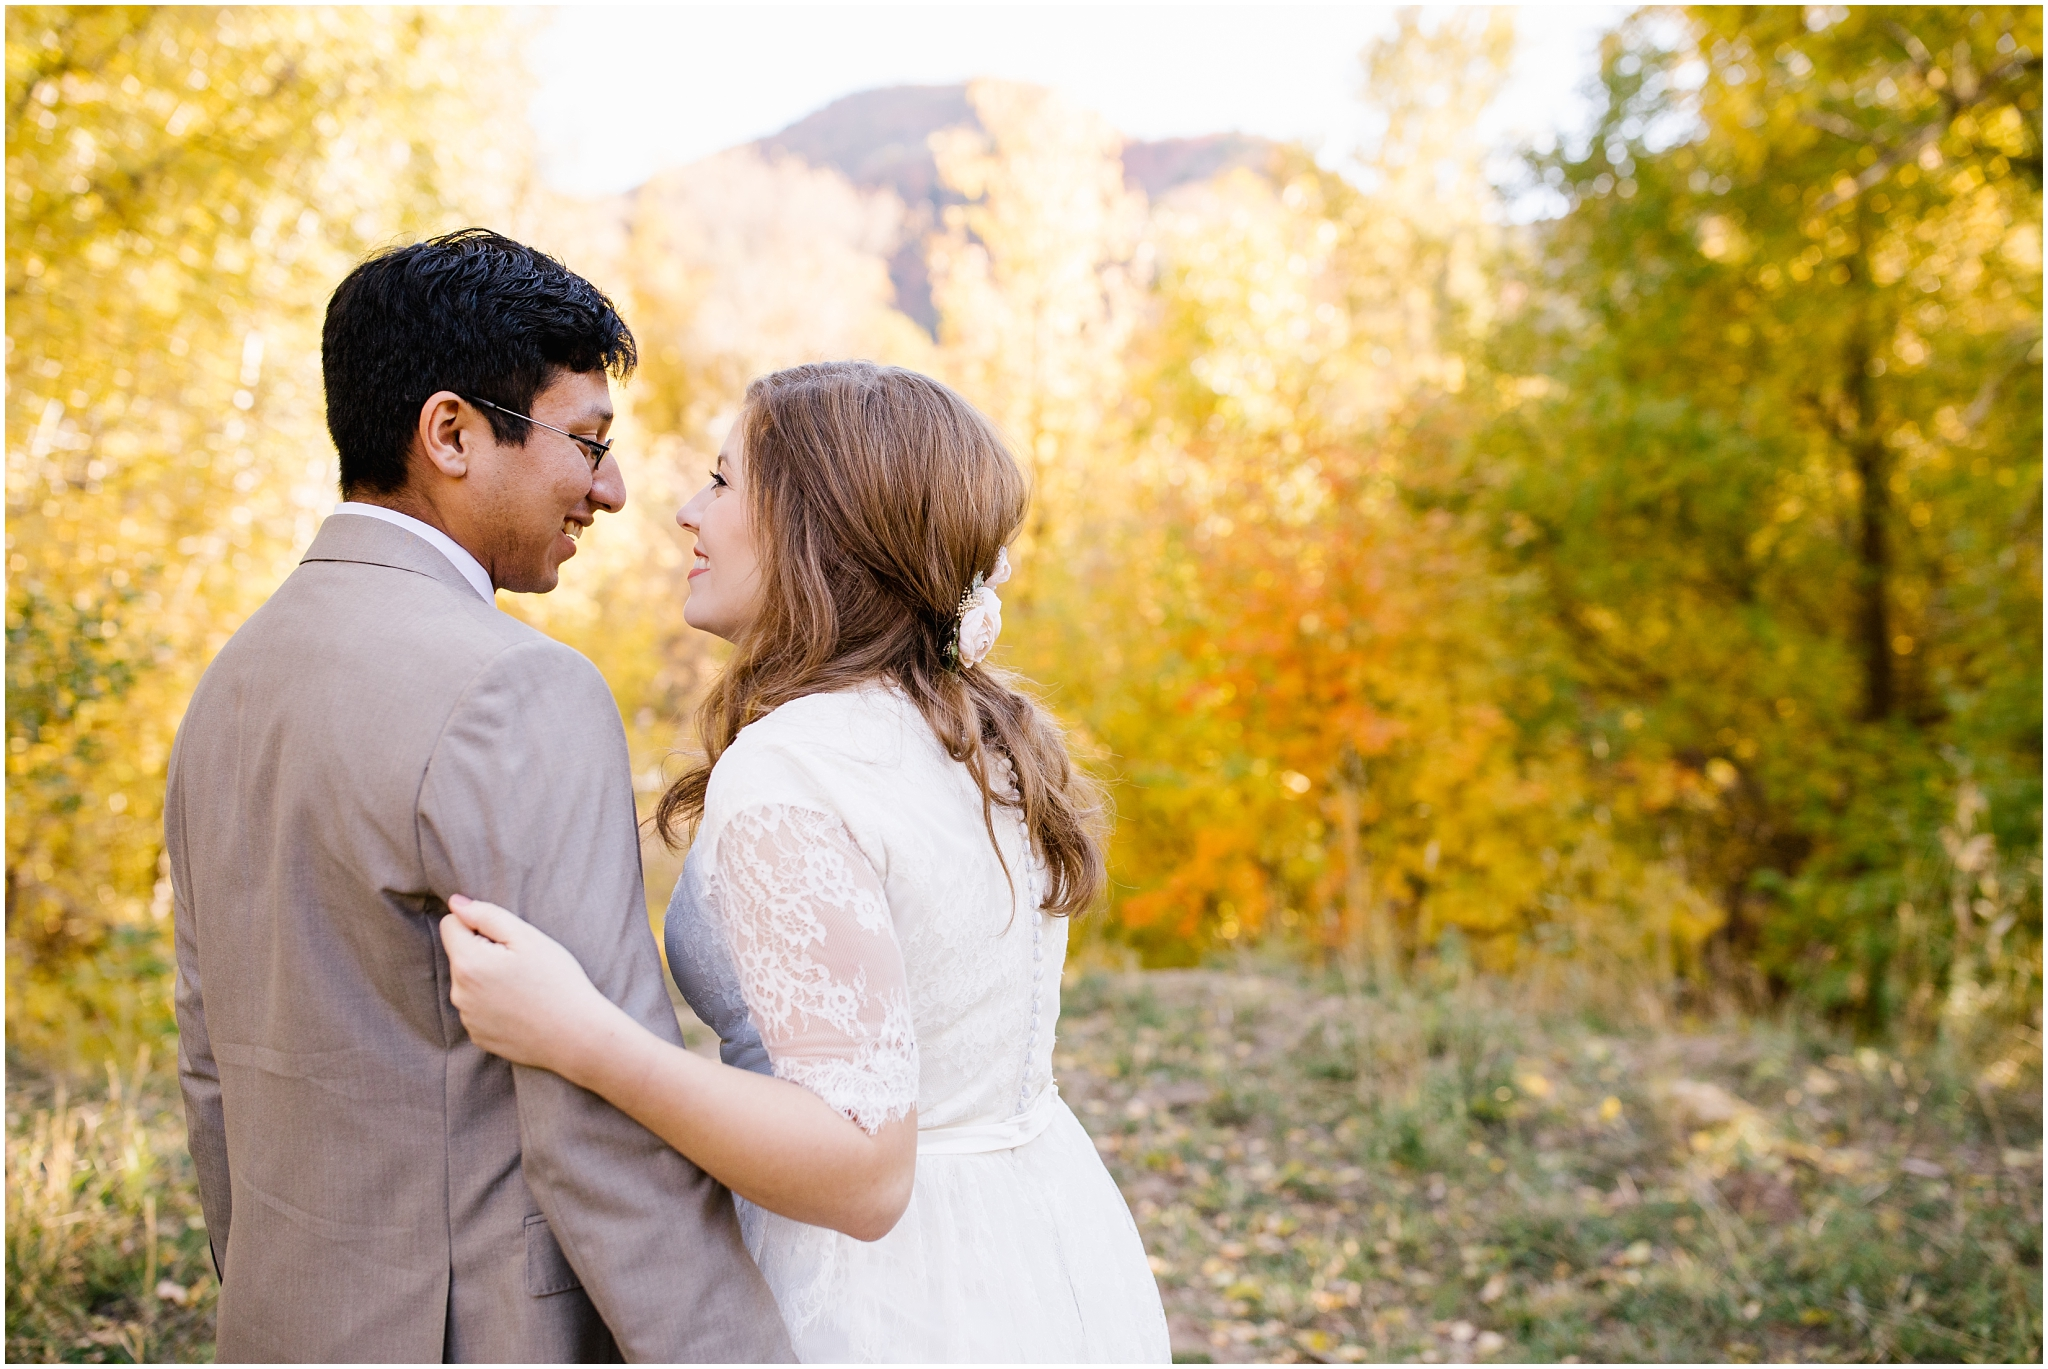 HE-BRIDALS-44_Lizzie-B-Imagery-Utah-Wedding-Photographer-Central-Utah-Park-City-Salt-Lake-City-Hobble-Creek-Canyon-Springville.jpg